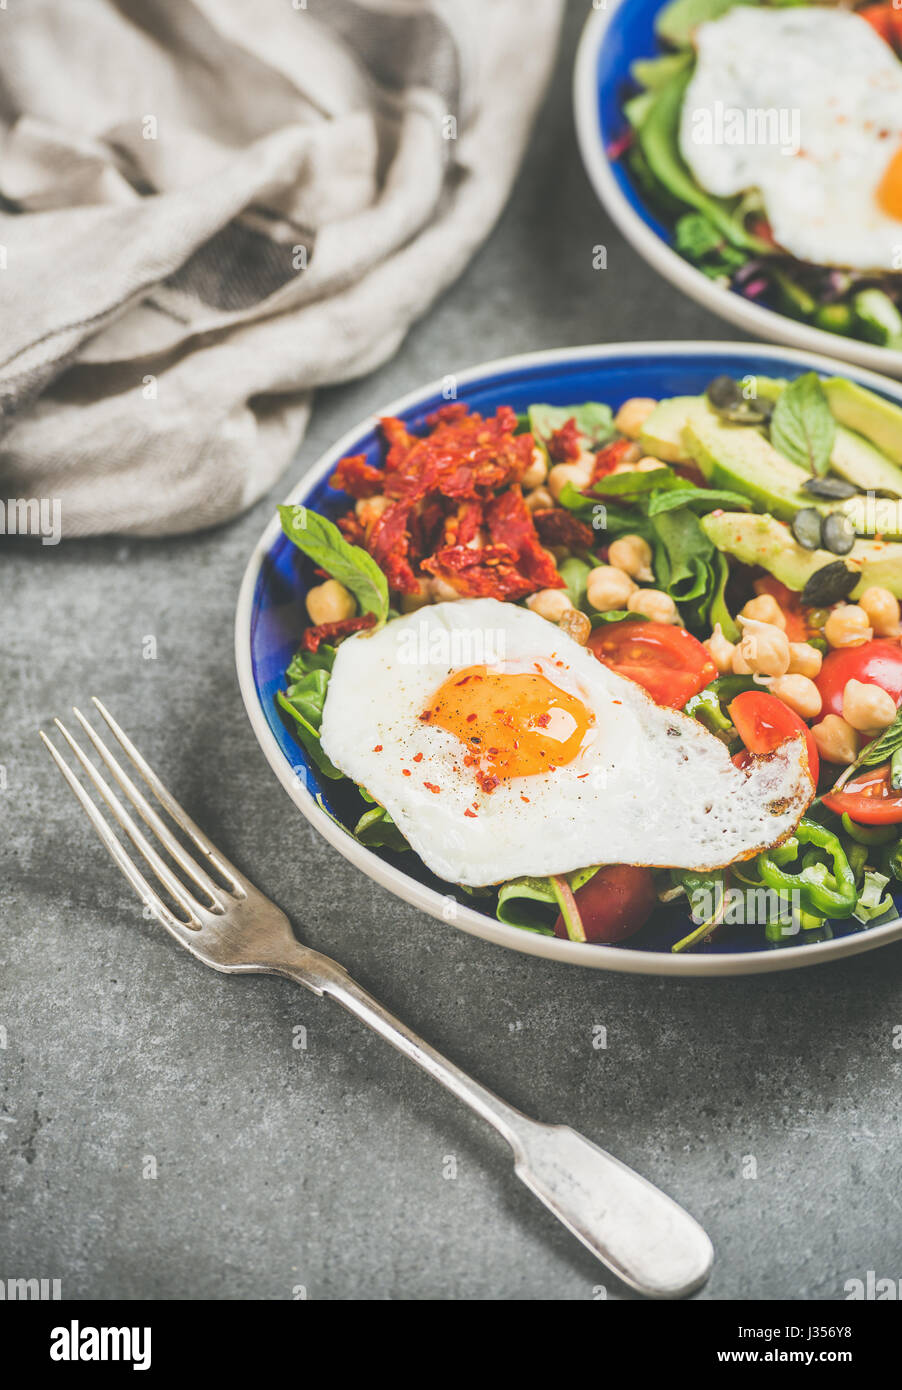 Vegetarian concept breakfast with fried egg, chickpea, vegetables, seeds - Stock Image